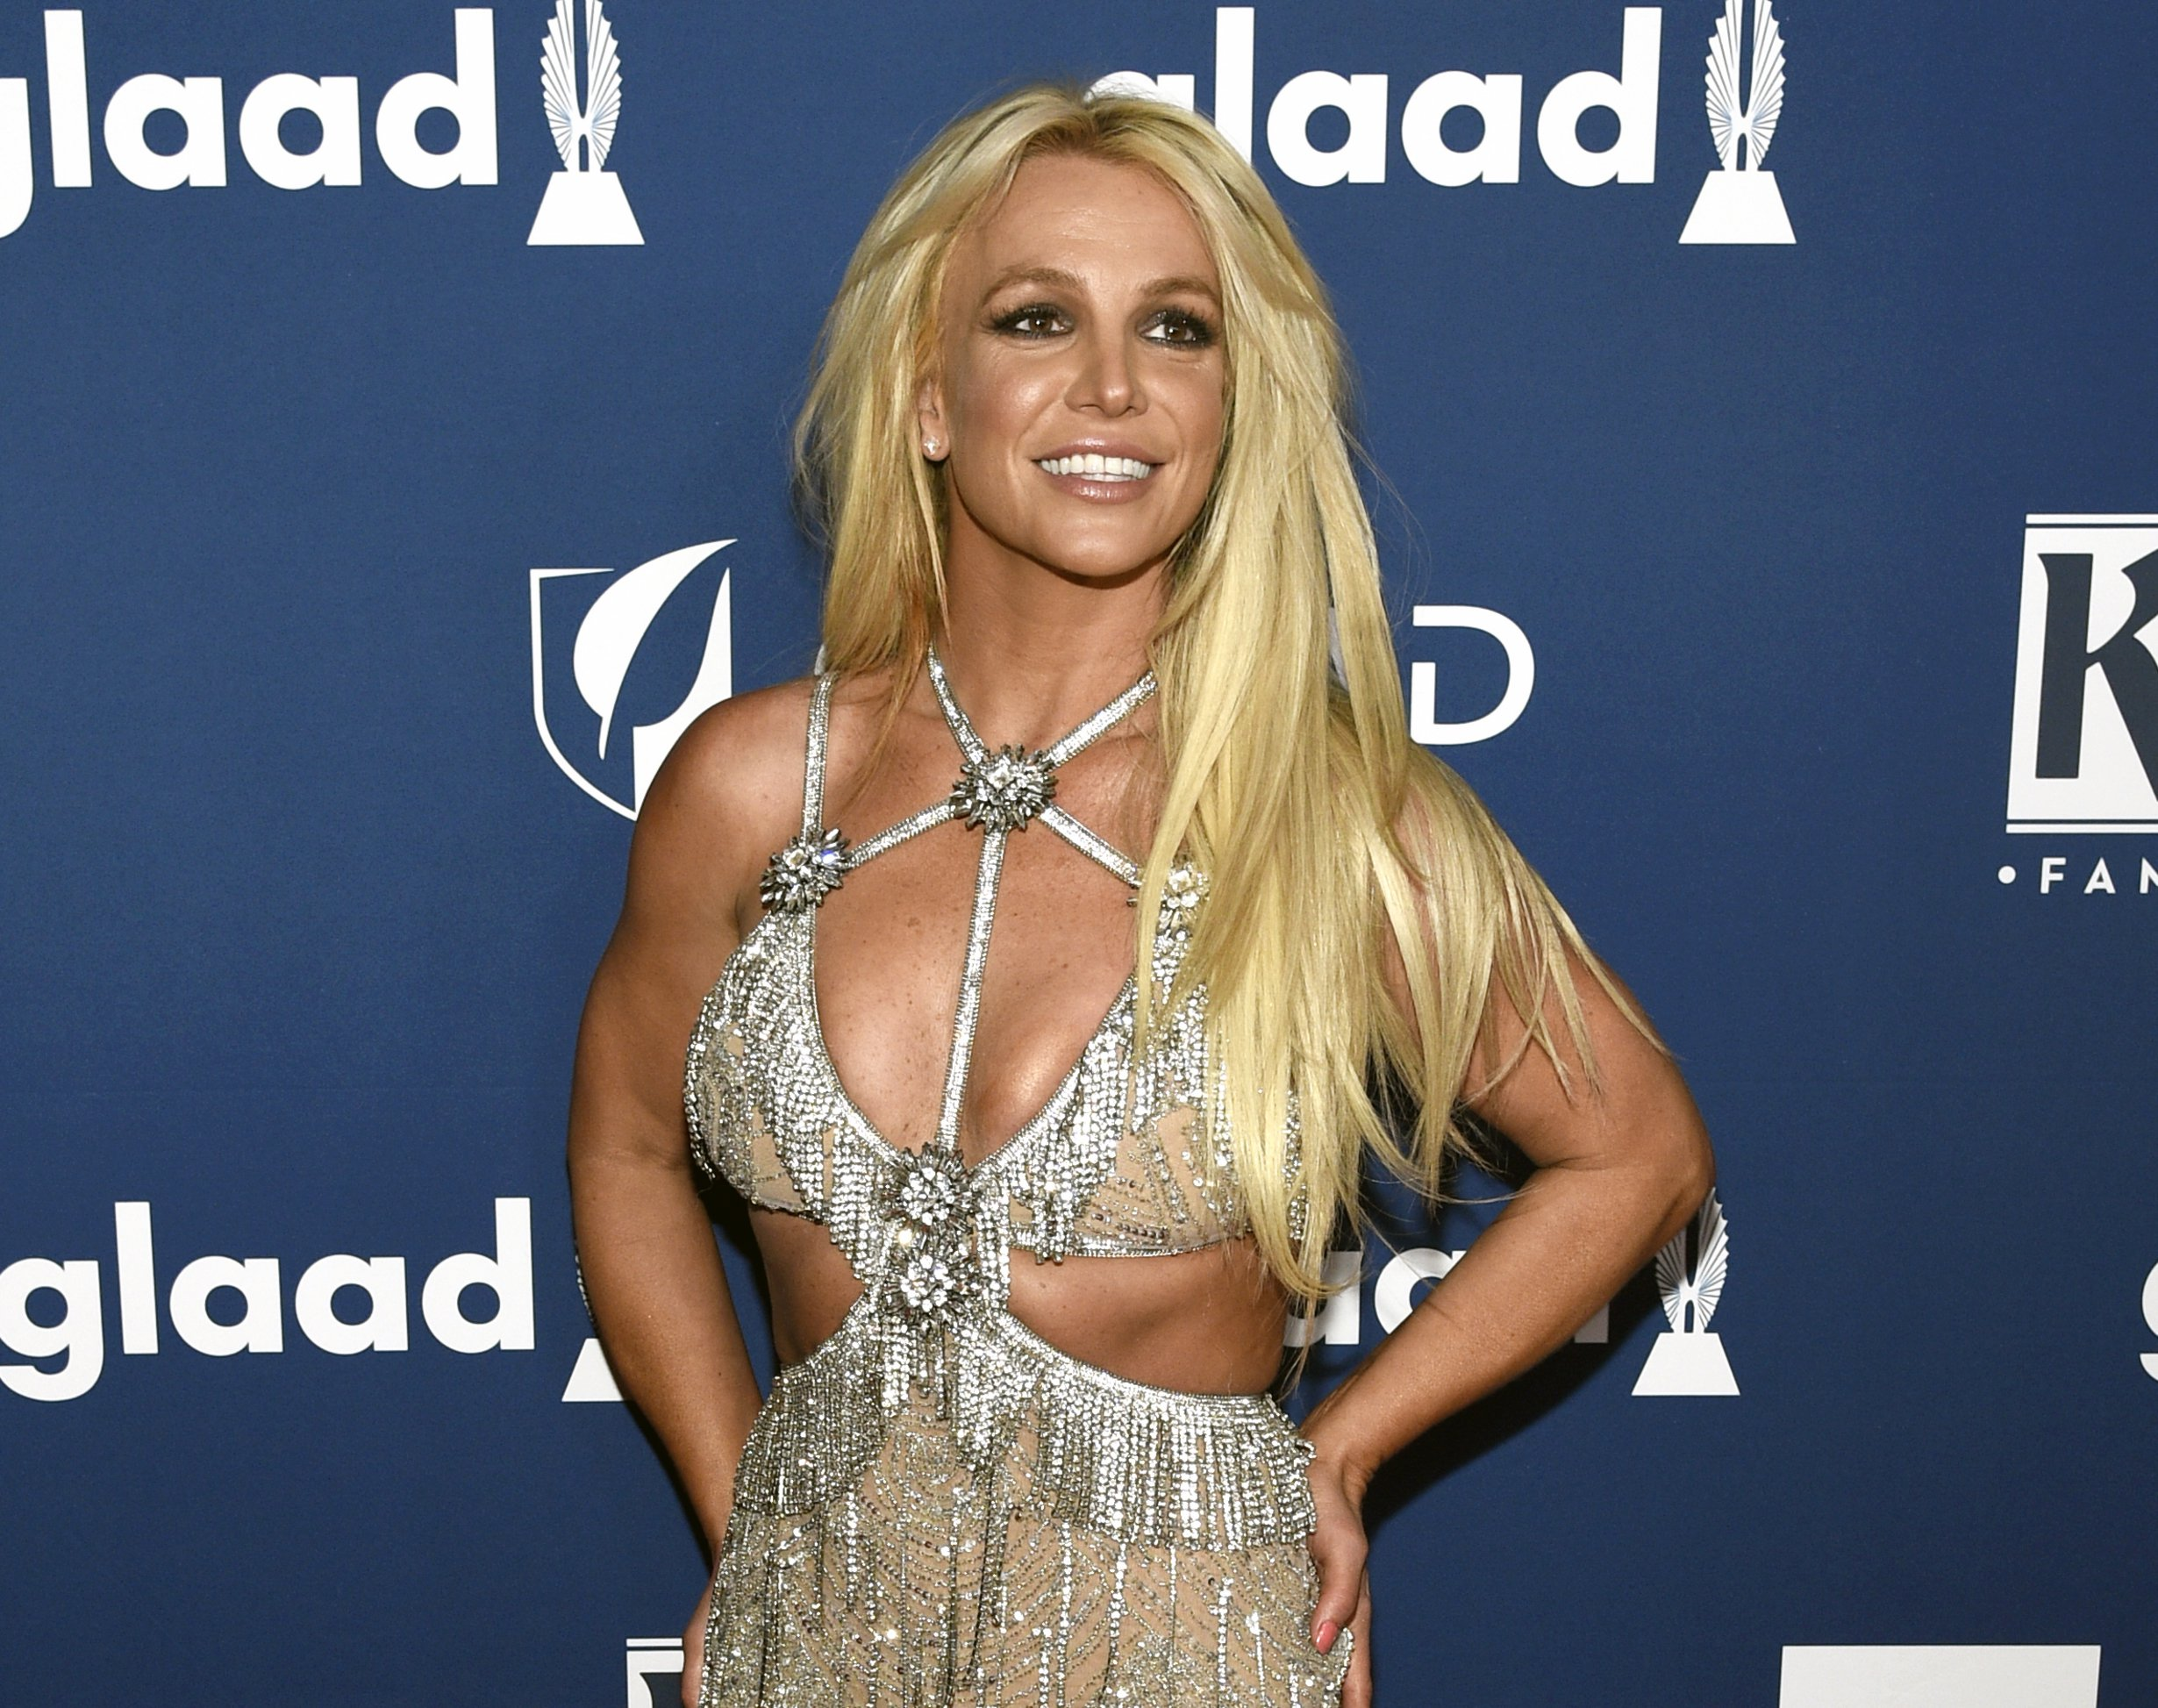 FILE - In this April 12, 2018 file photo, Britney Spears arrives at the 29th annual GLAAD Media Awards in Beverly Hills, Calif. Spears is putting her planned Las Vegas residency on hold to focus on her father's recovery from a recent life-threatening illness. The pop superstar announced Friday, Jan. 4, 2019 she is going on an indefinite work hiatus. (Photo by Chris Pizzello/Invision/AP, File)